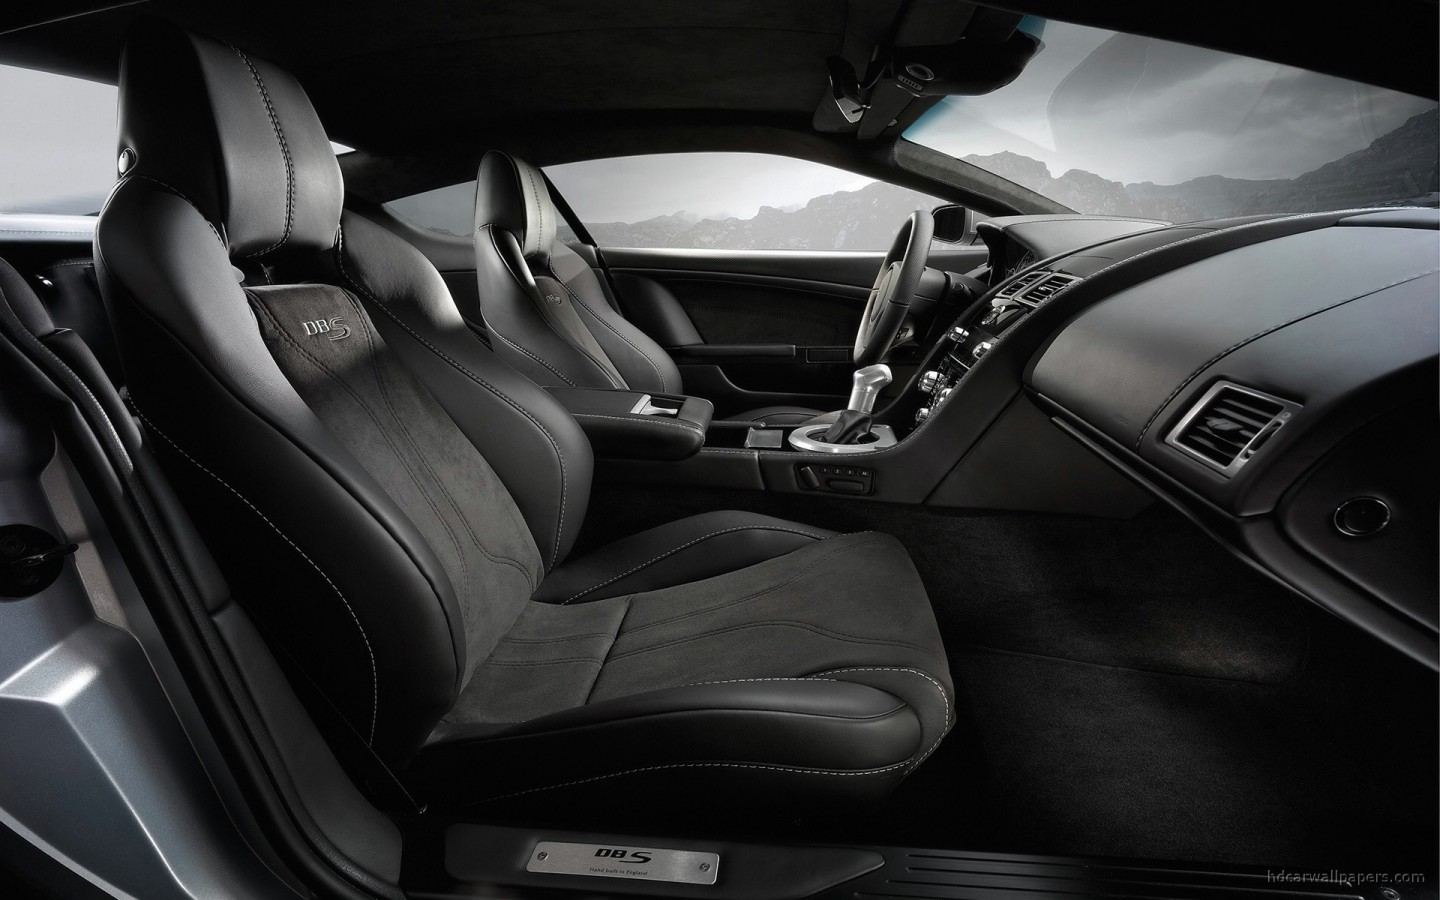 Aston Martin Dbs Interior Wallpaper Hd Car Wallpapers